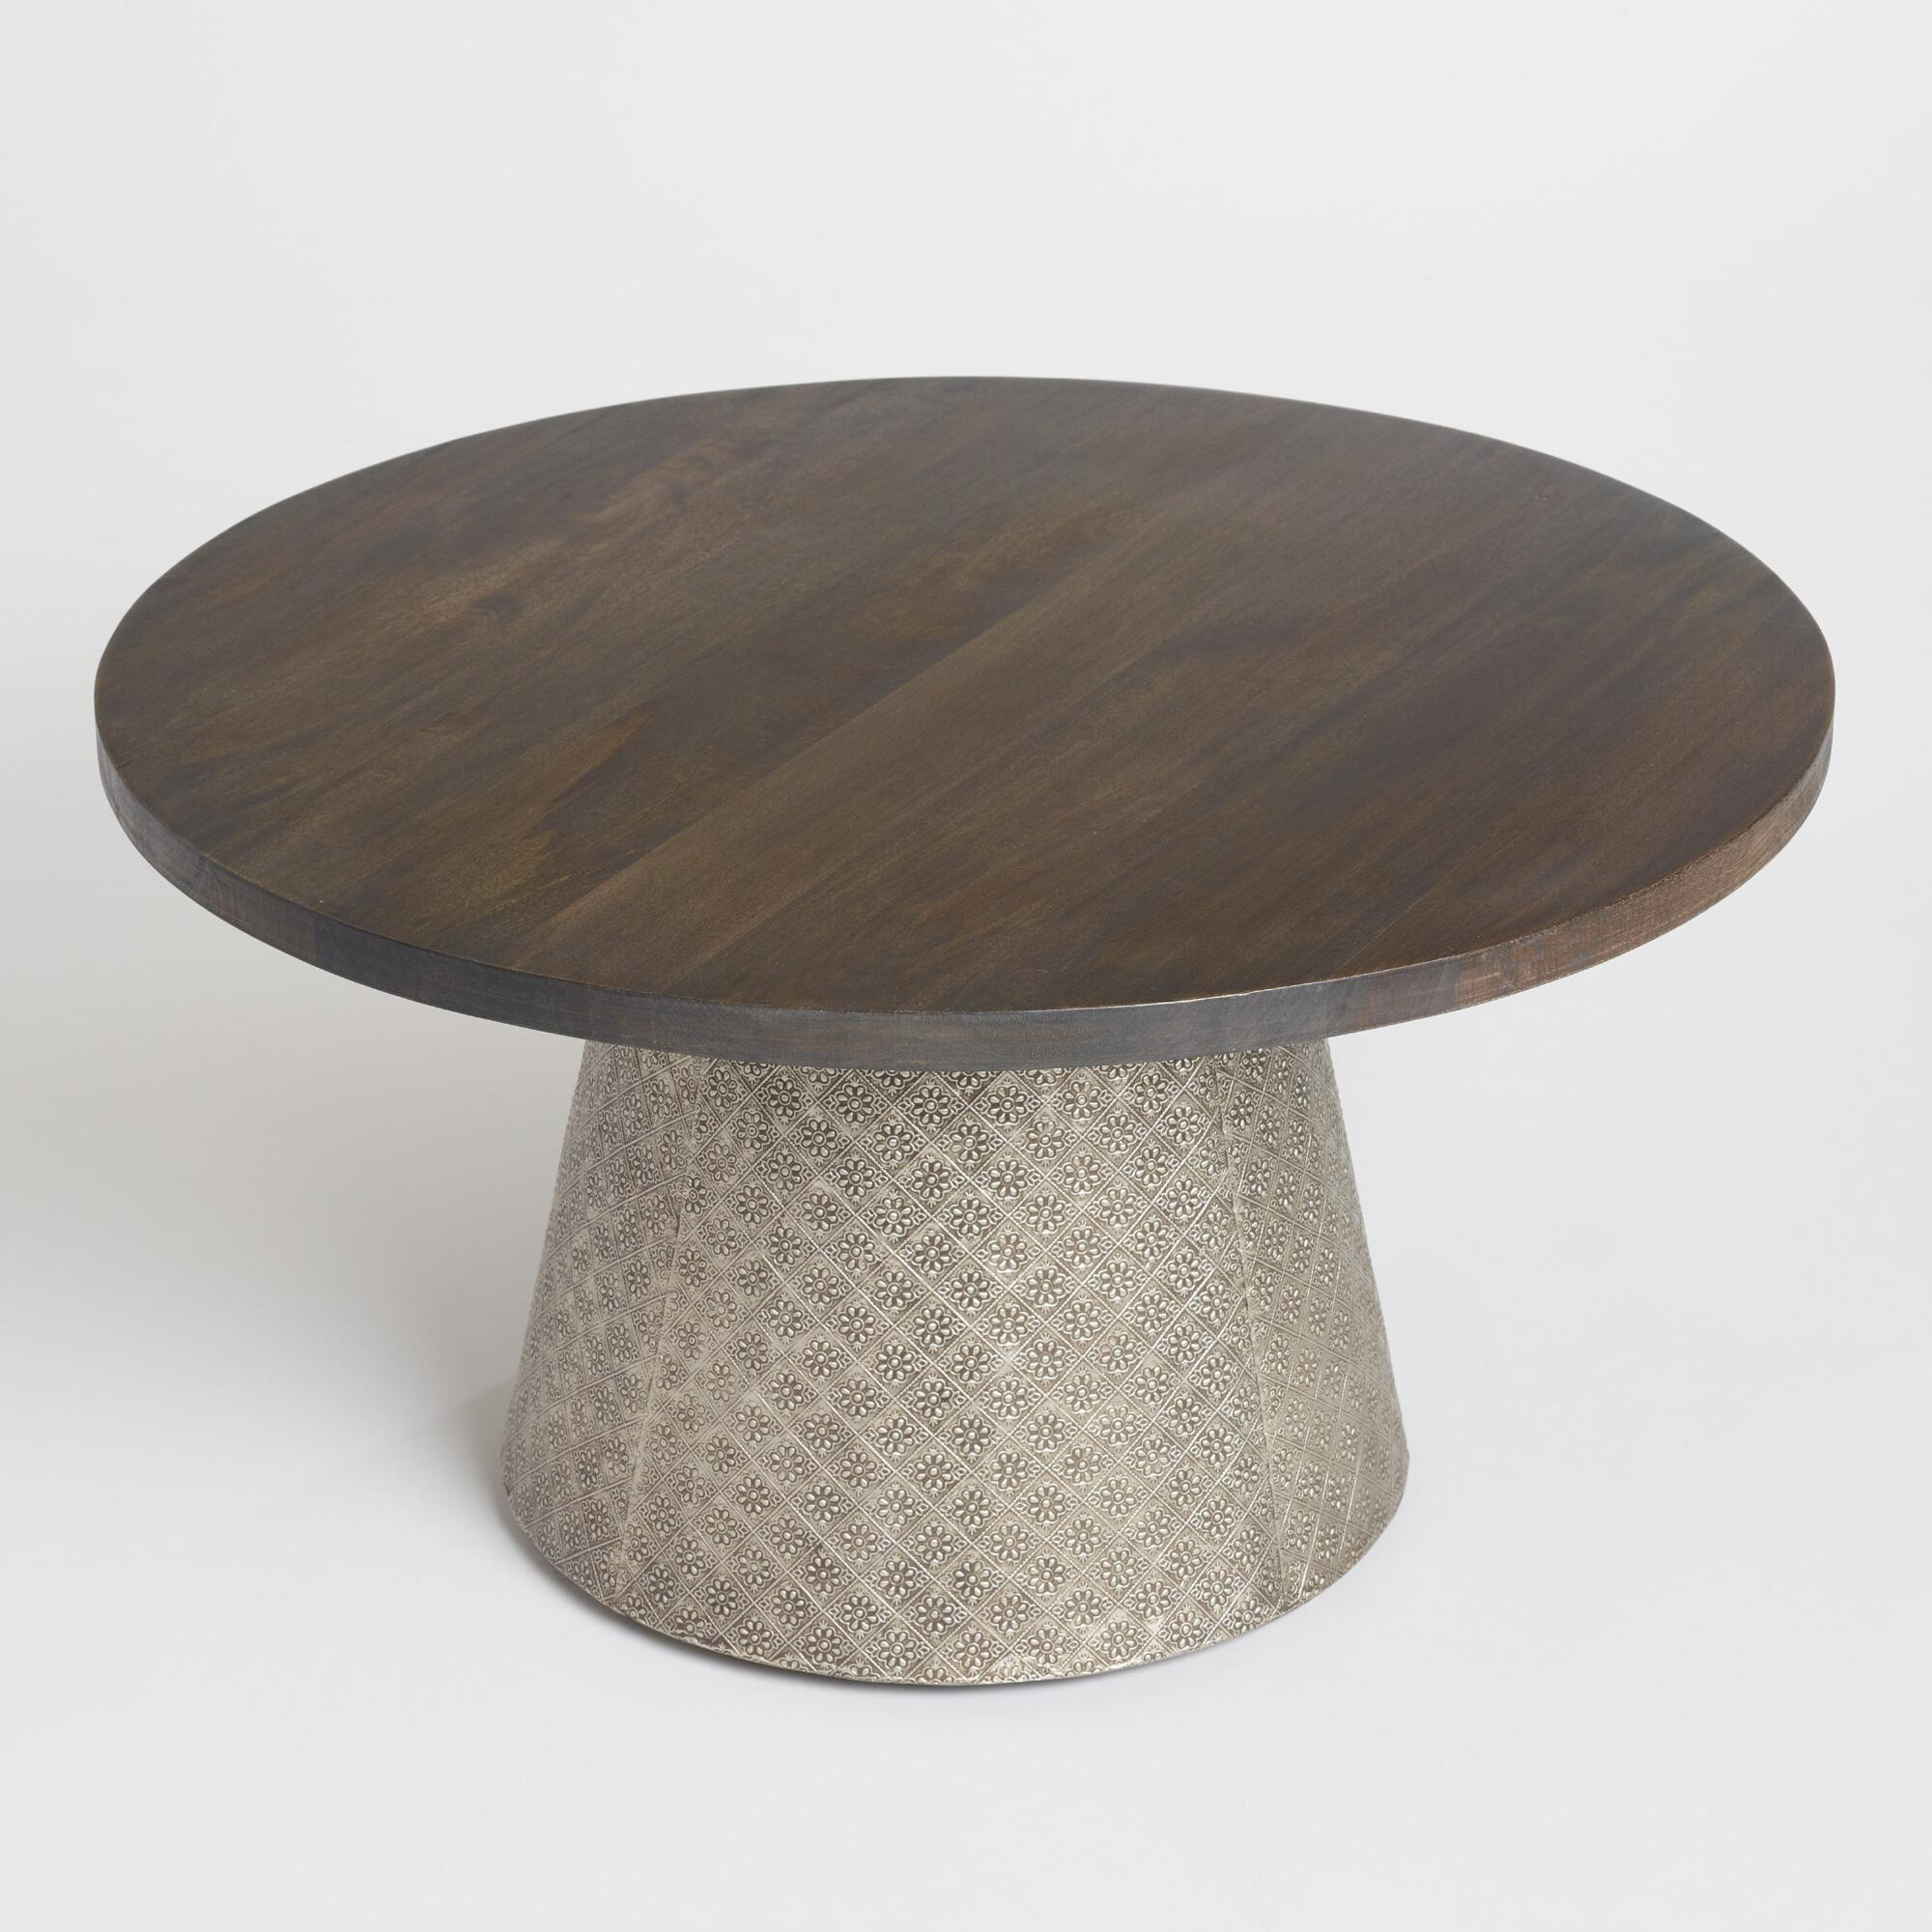 coffee tables end accent world market iipsrv fcgi ceramic drum table round wood and embossed metal kiran large dining room chairs outdoor furniture patio side crochet tablecloth